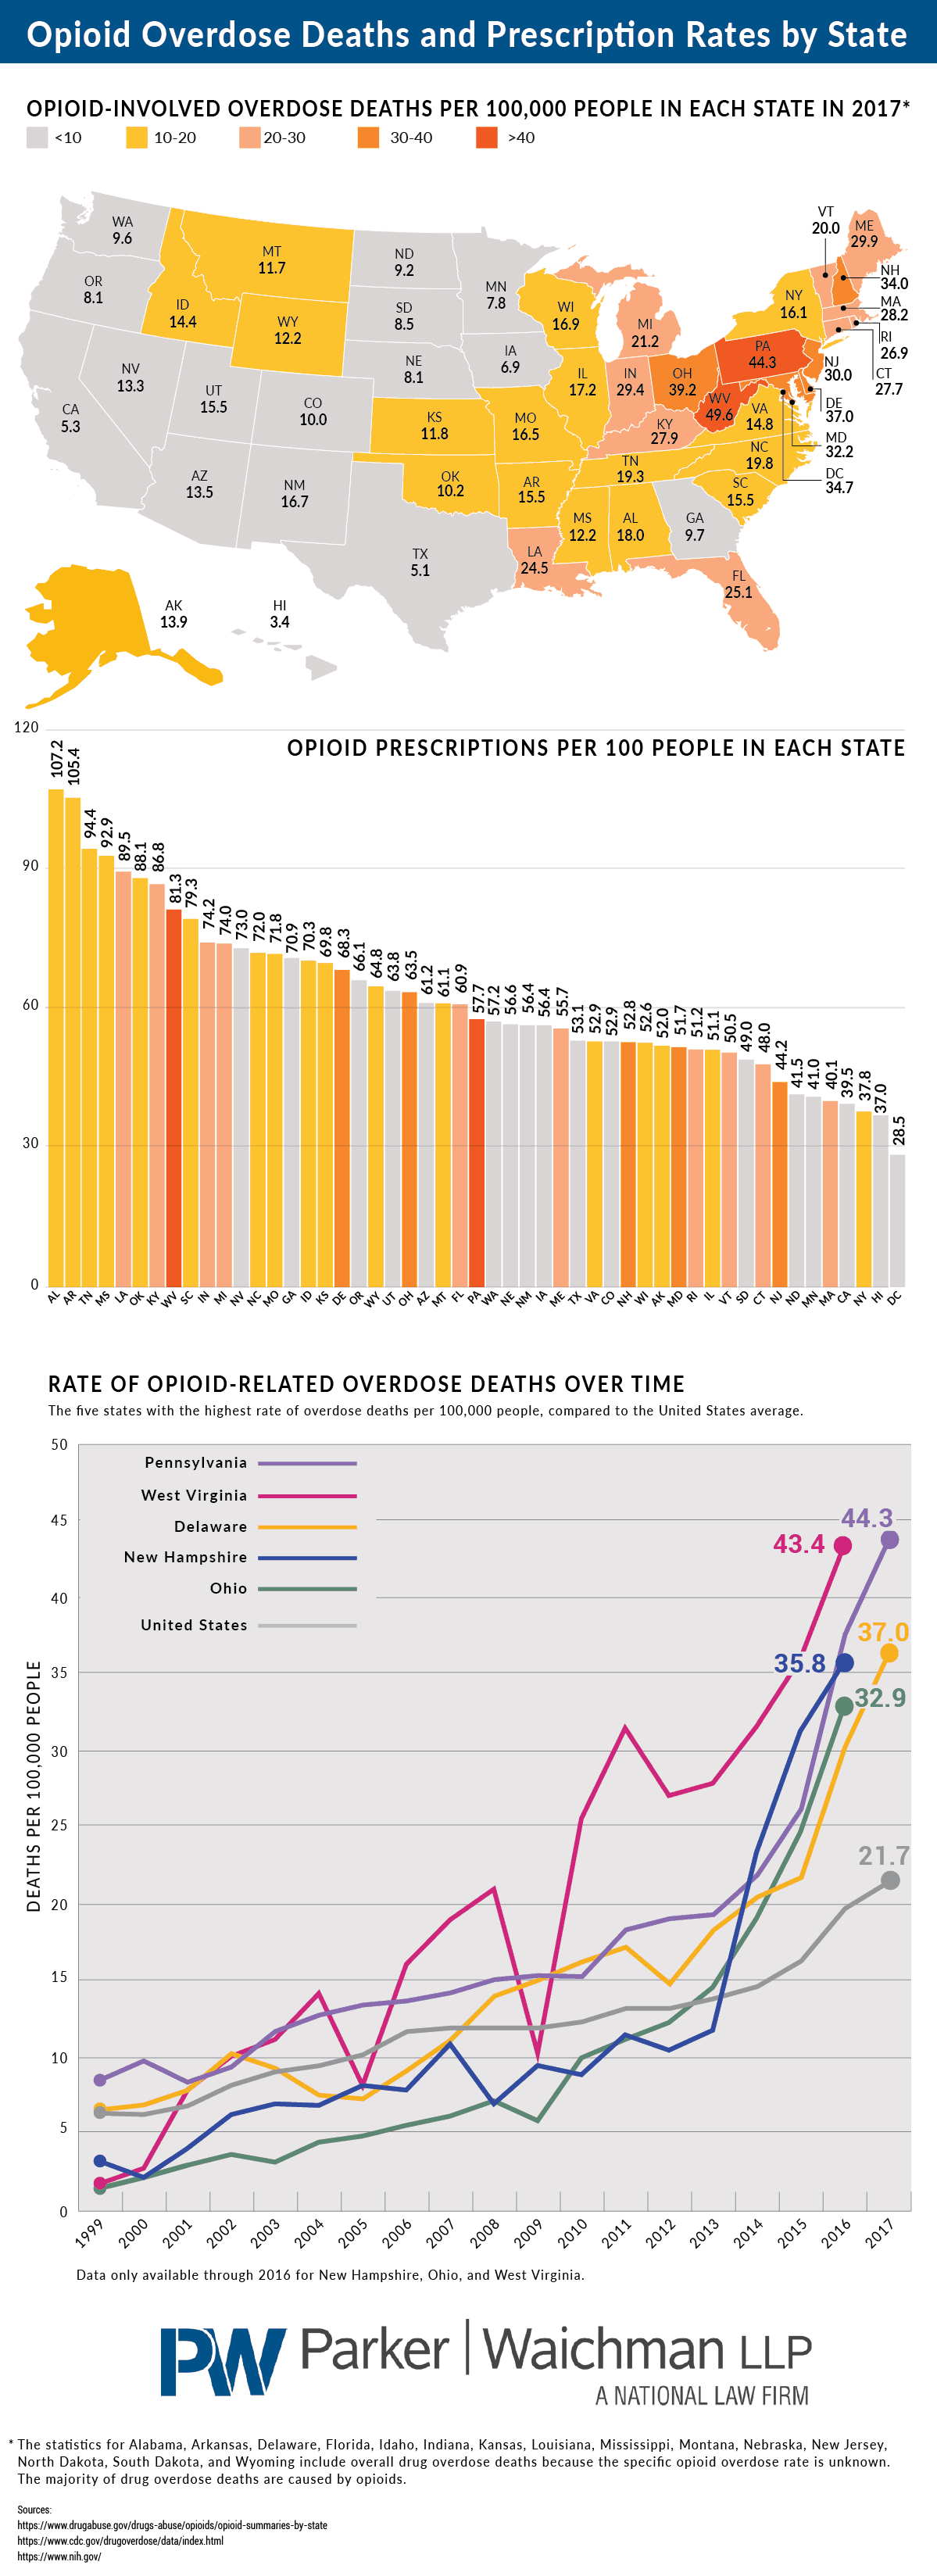 Opioid Overdose Deaths Compared to Opioid Prescription Rates in Each State